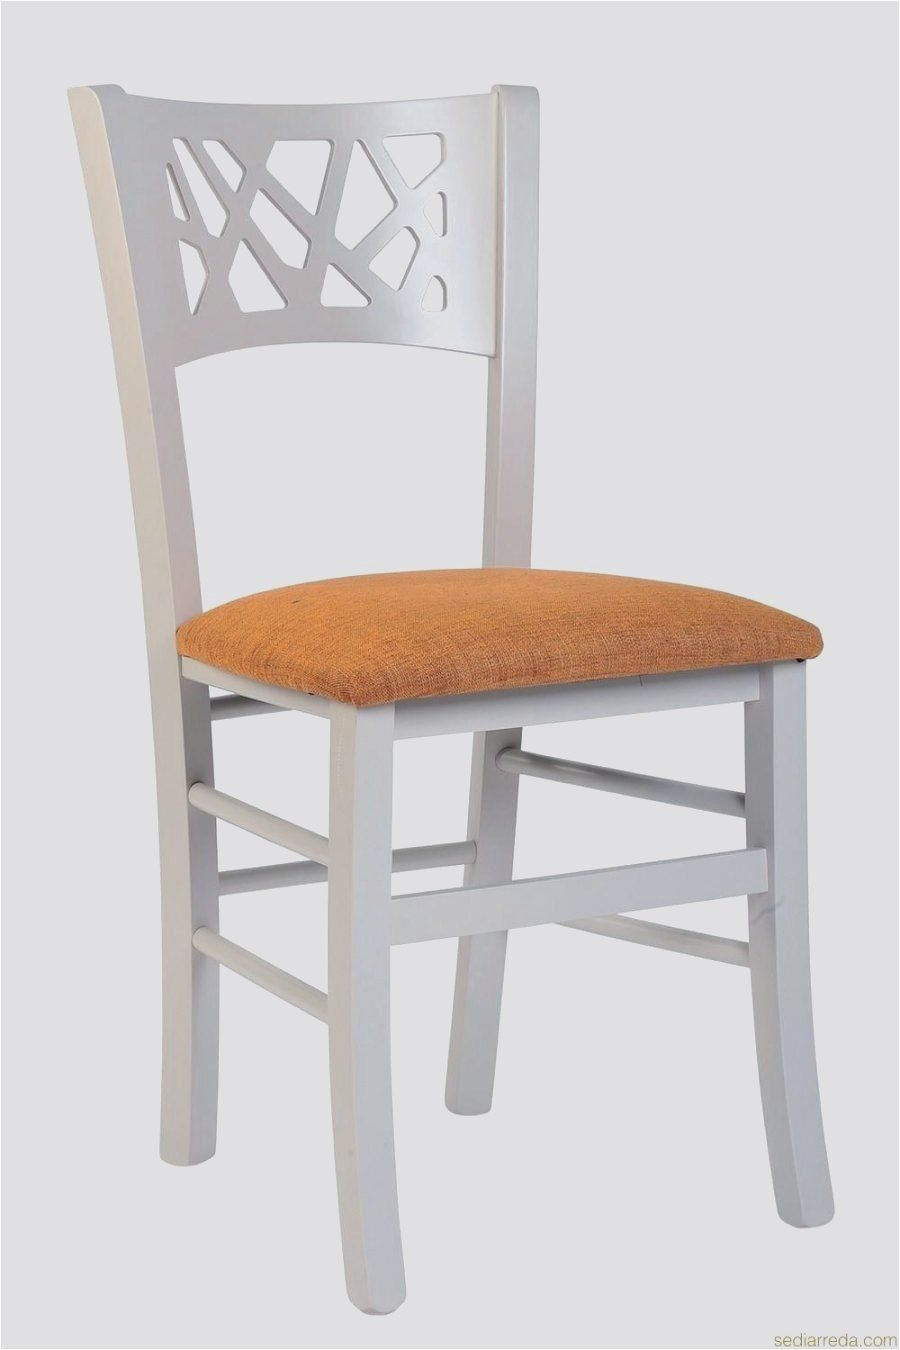 70 Chaise Blanche Plastique Check More At Https Leonstafford Com Chaise Blanche Plastique Dining Chairs Chaise Furniture